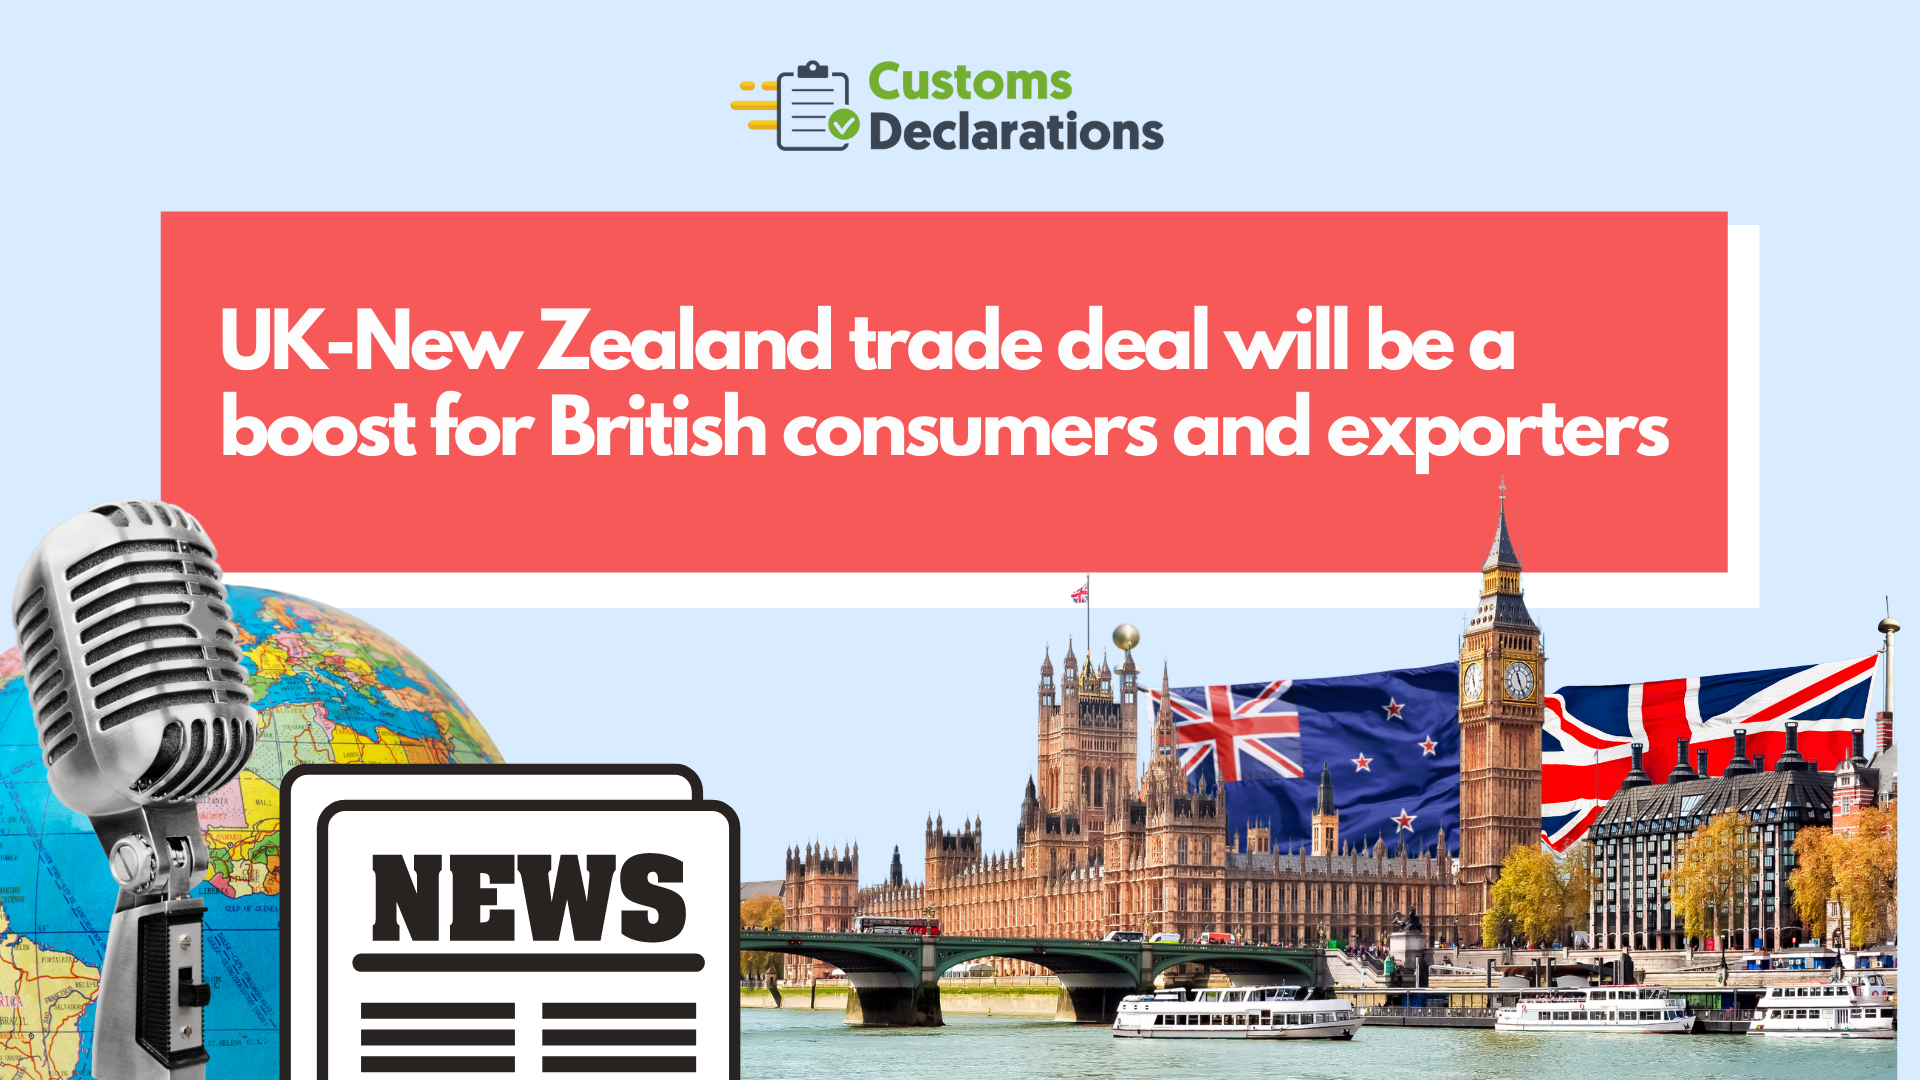 UK-New Zealand trade deal will be a boost for British consumers and exporters